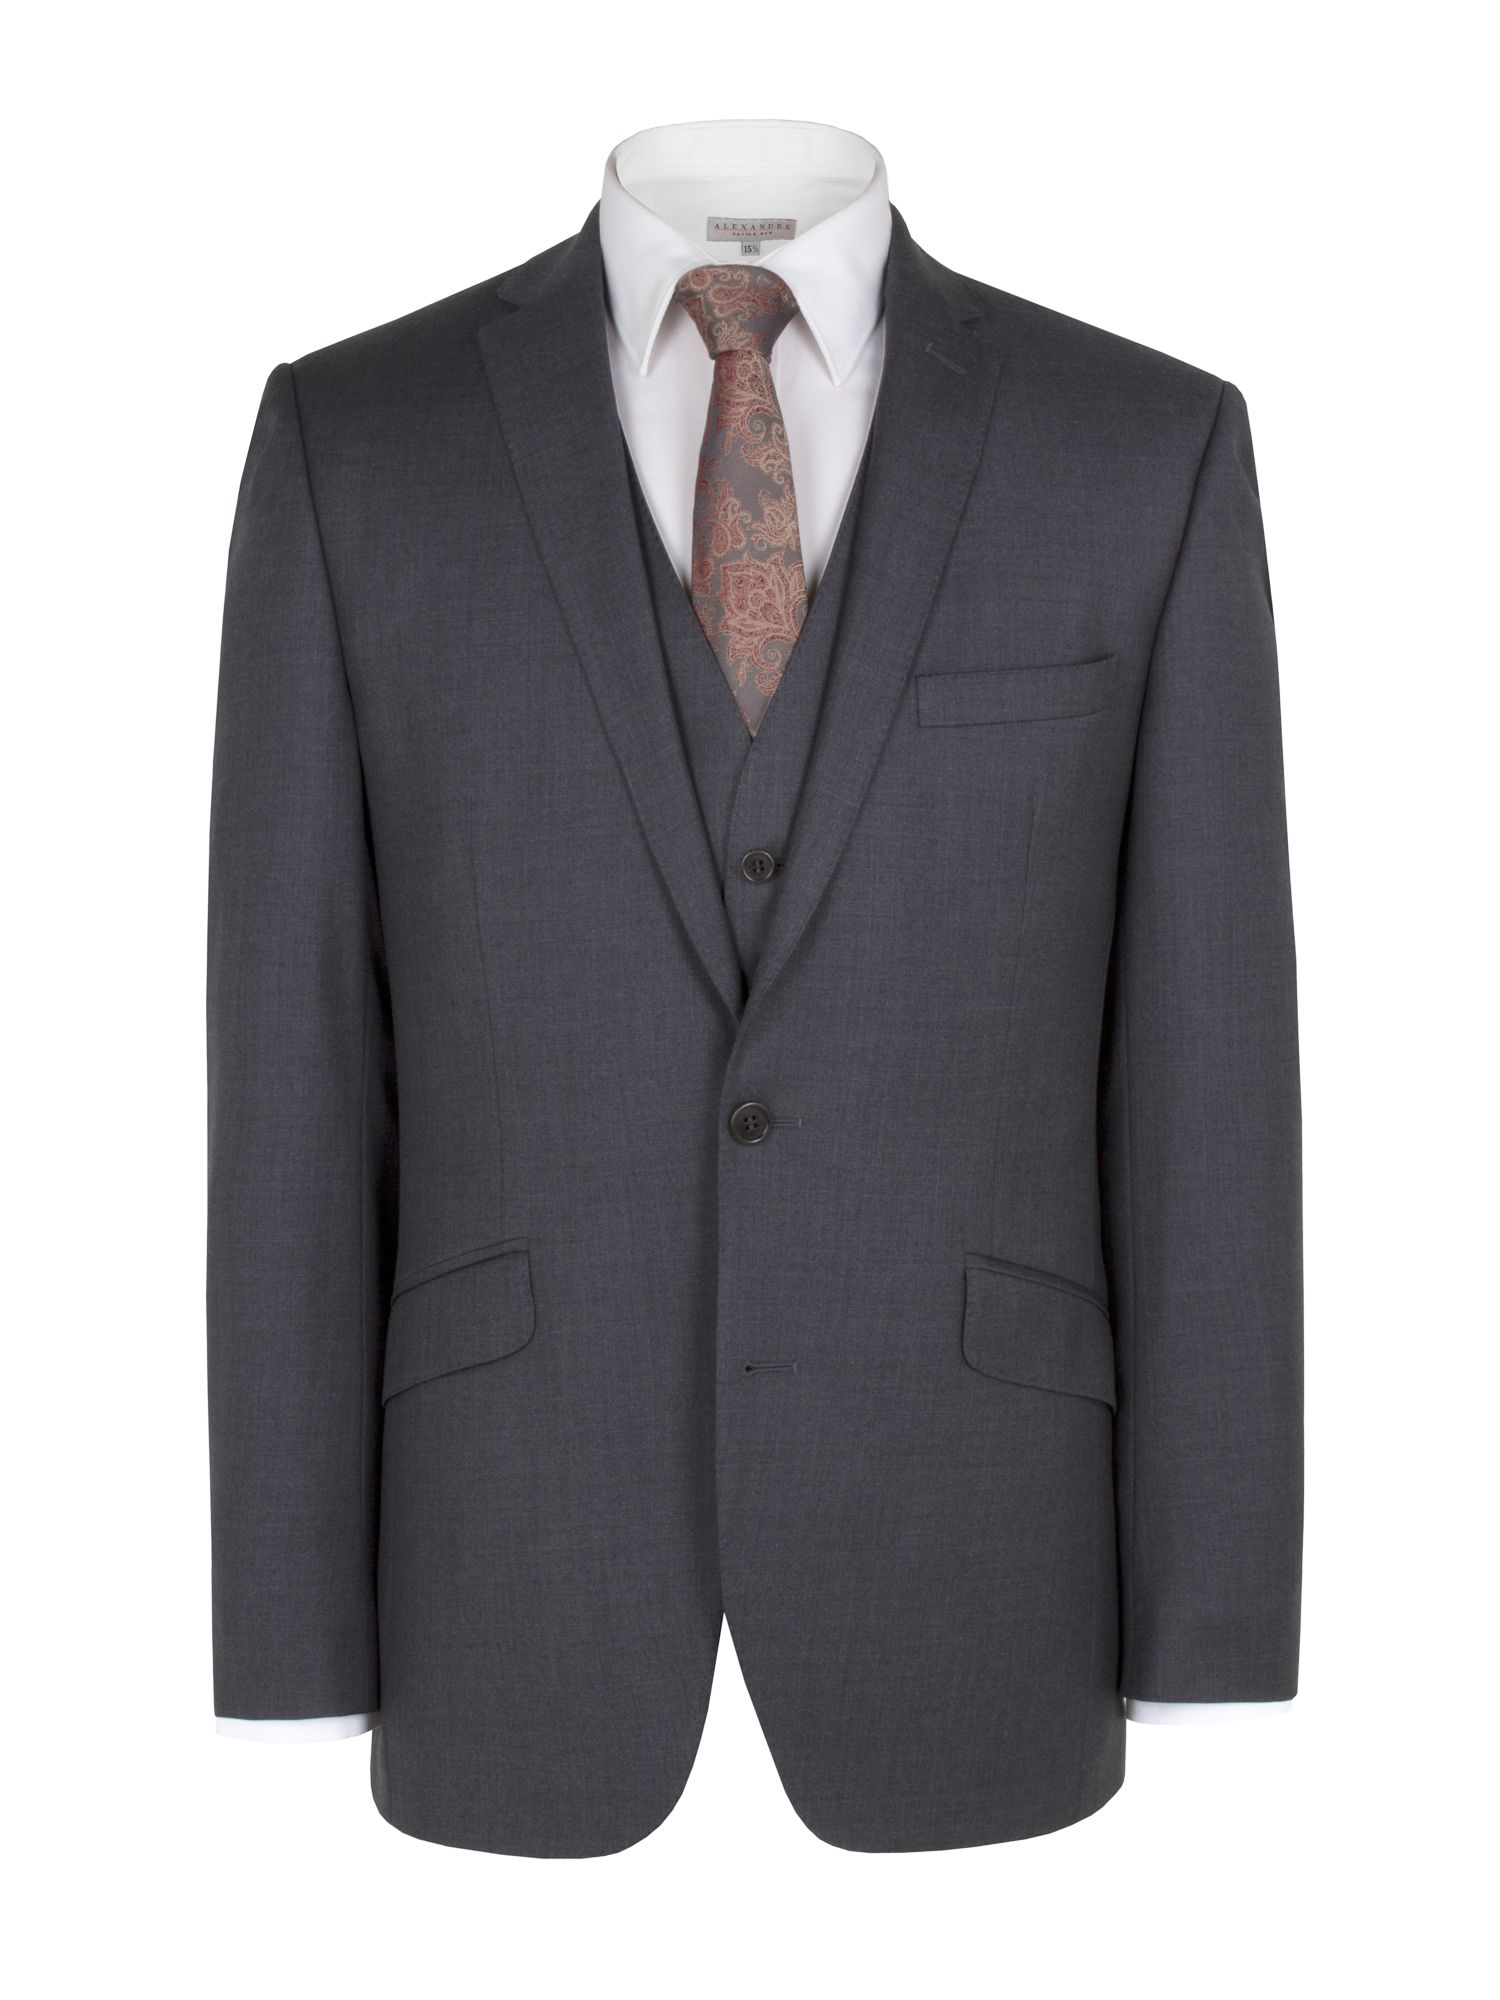 Charcoal cashmere suit and waistcoat